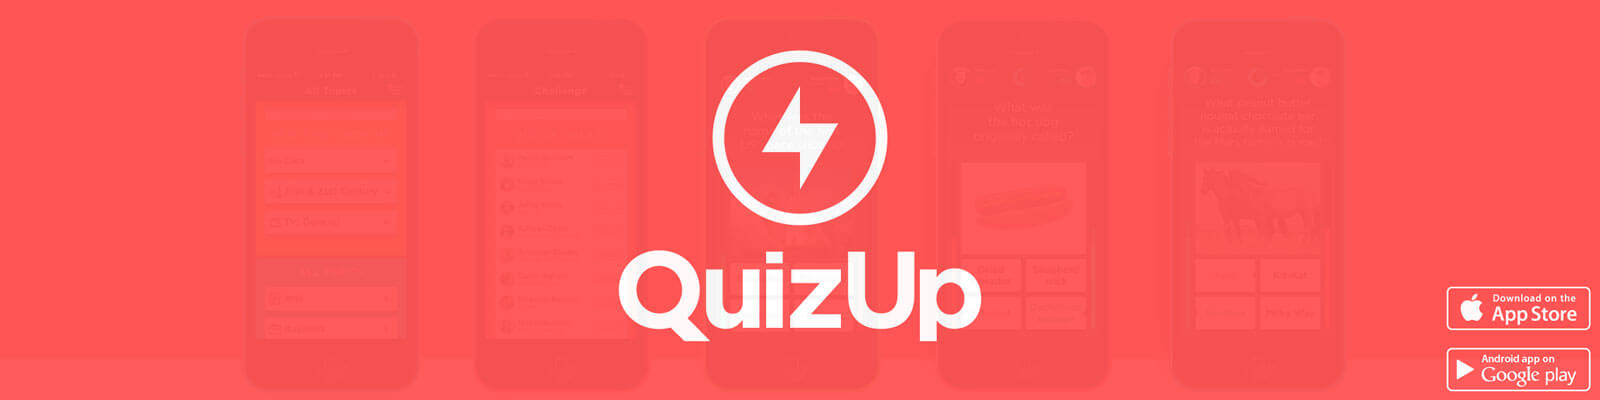 application like quizup